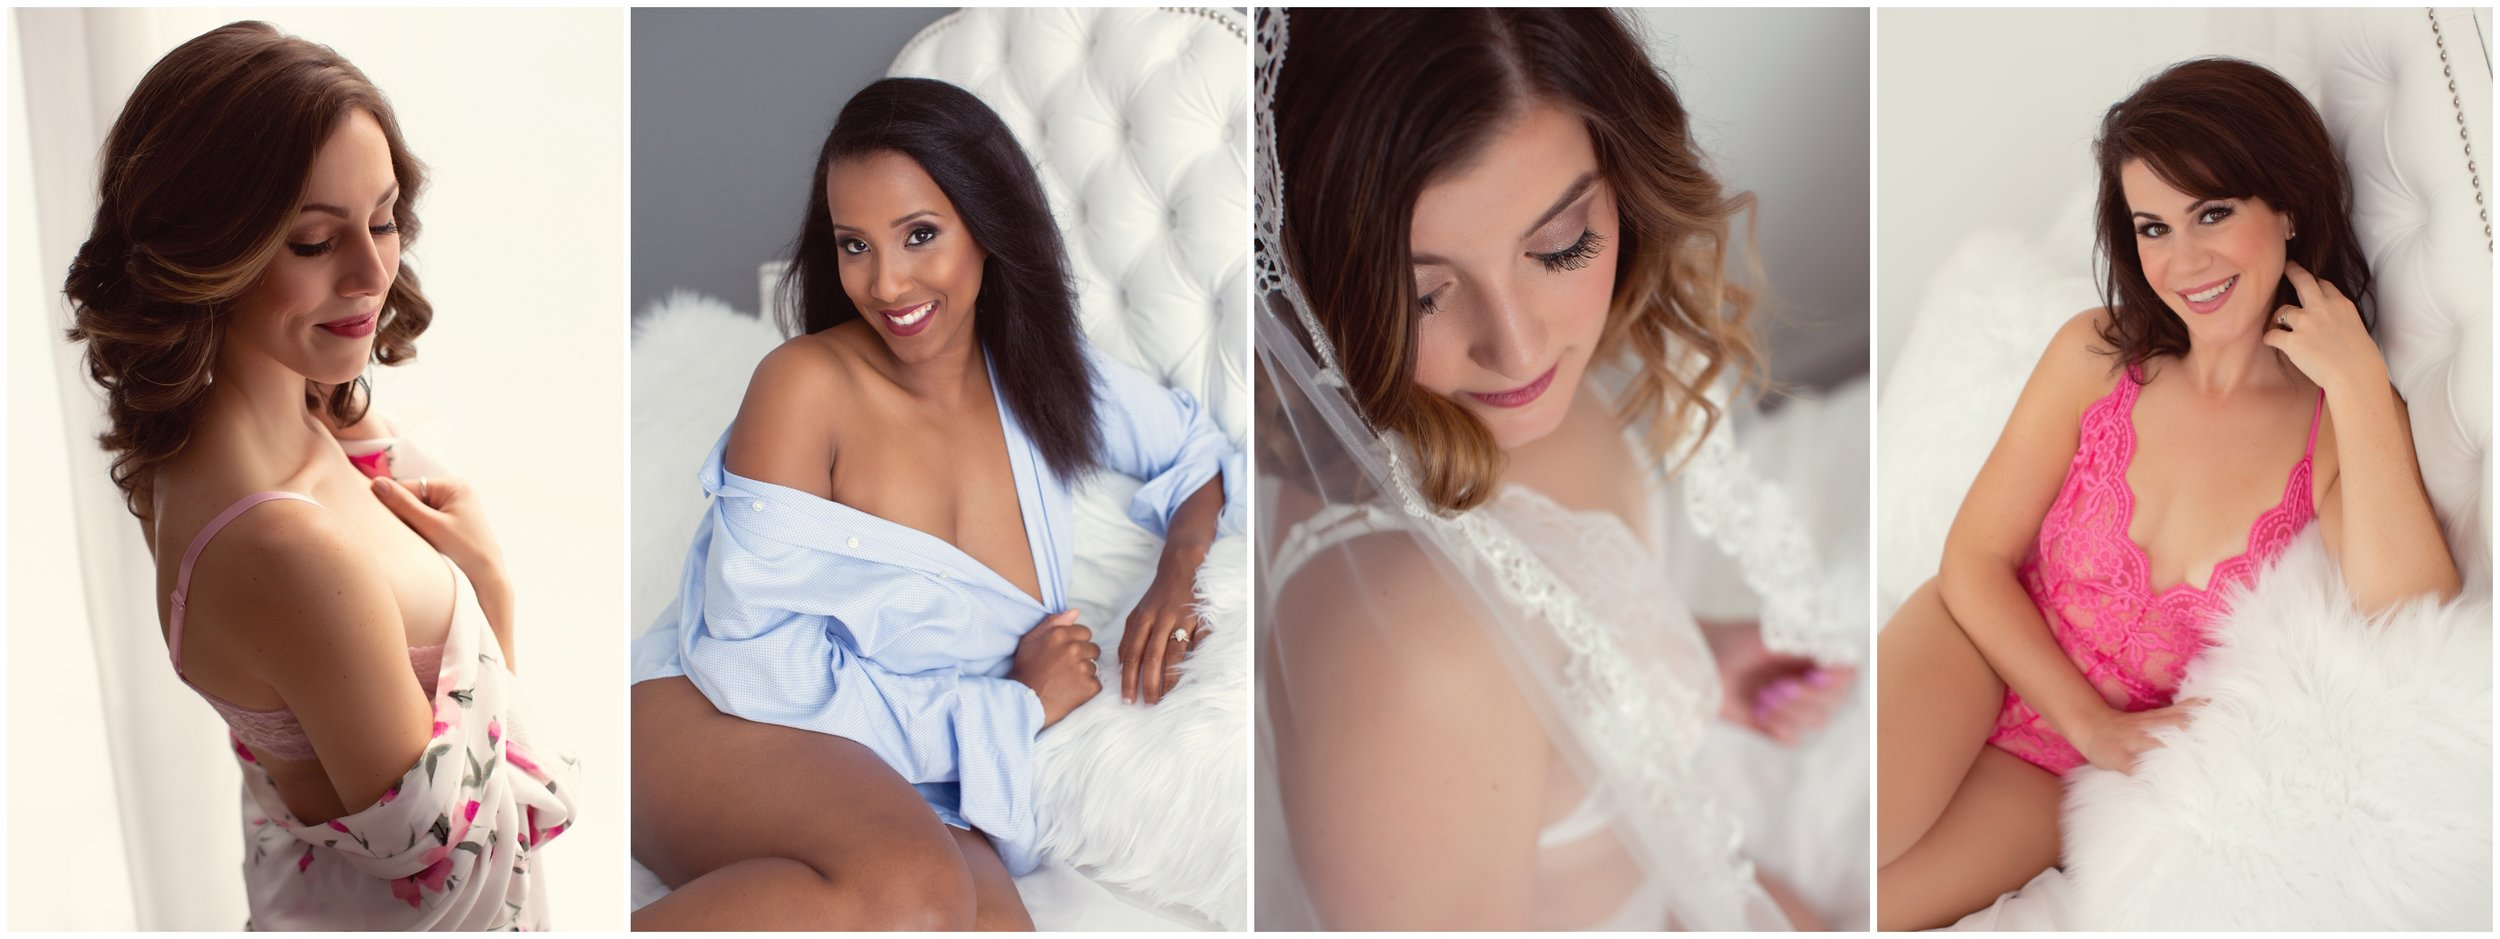 chicago-boudoir-photography-studio-hair-and-makeup